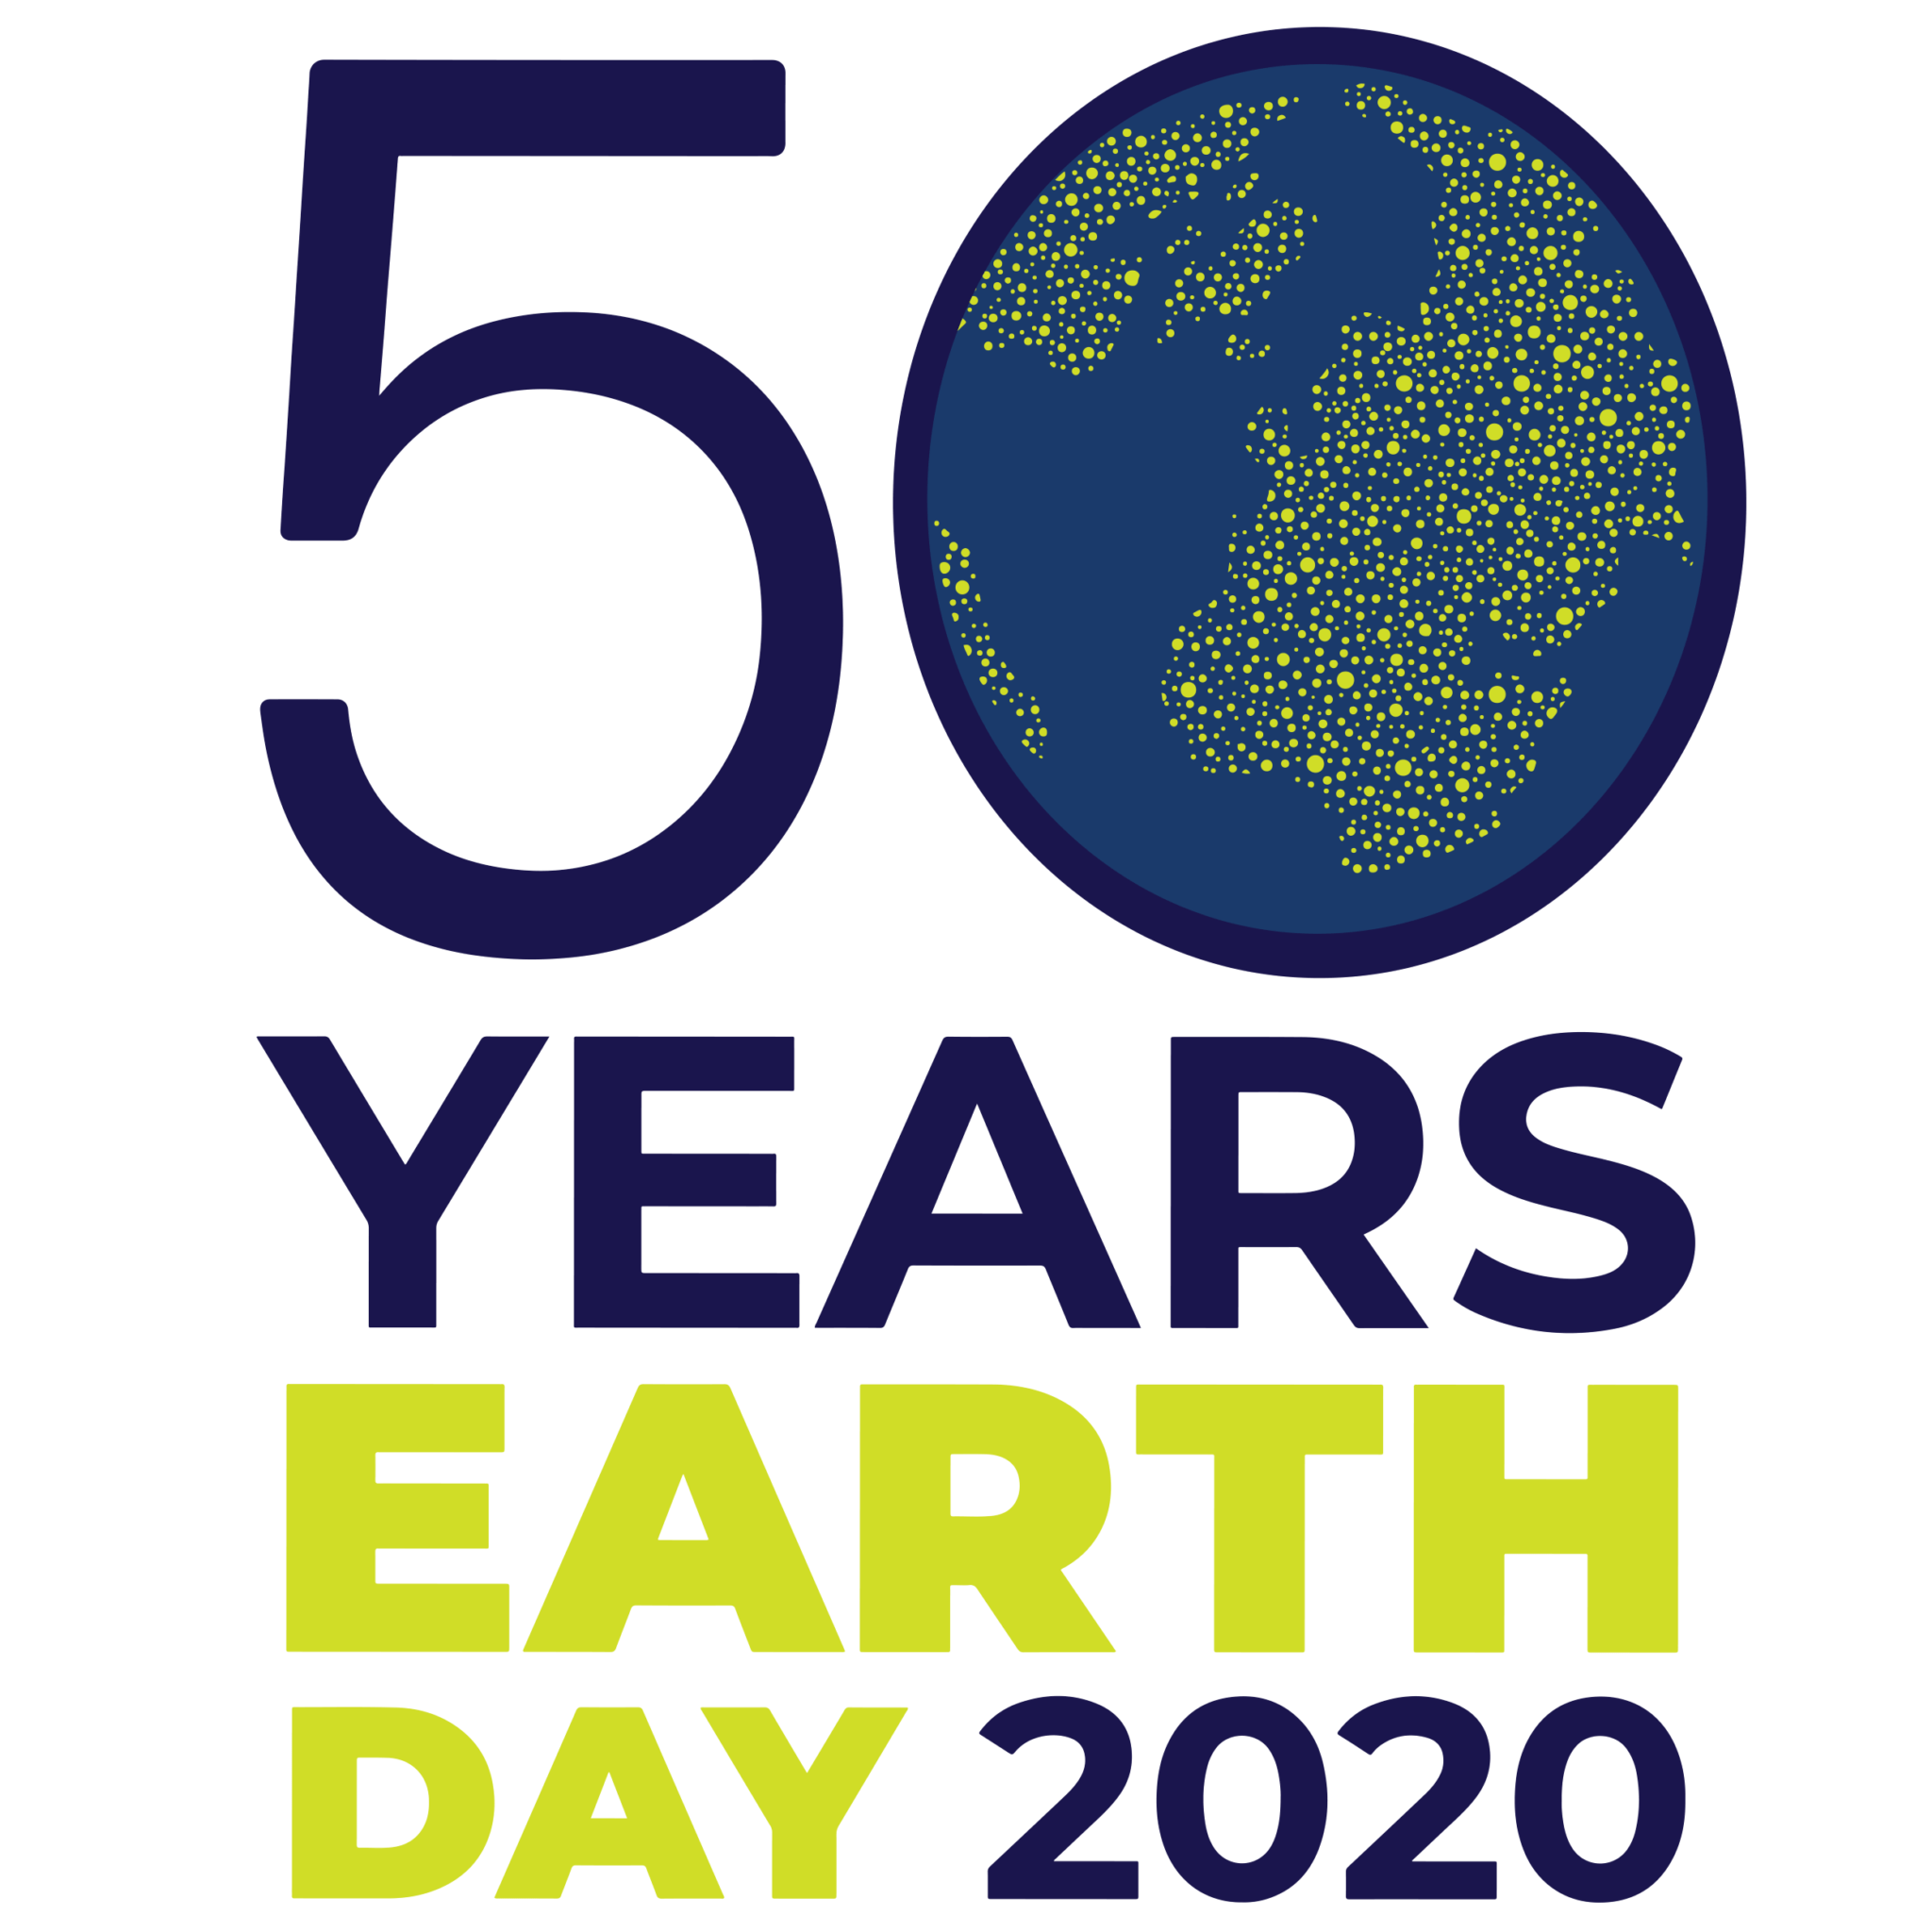 Celebrating 50 years of environmental activities of students